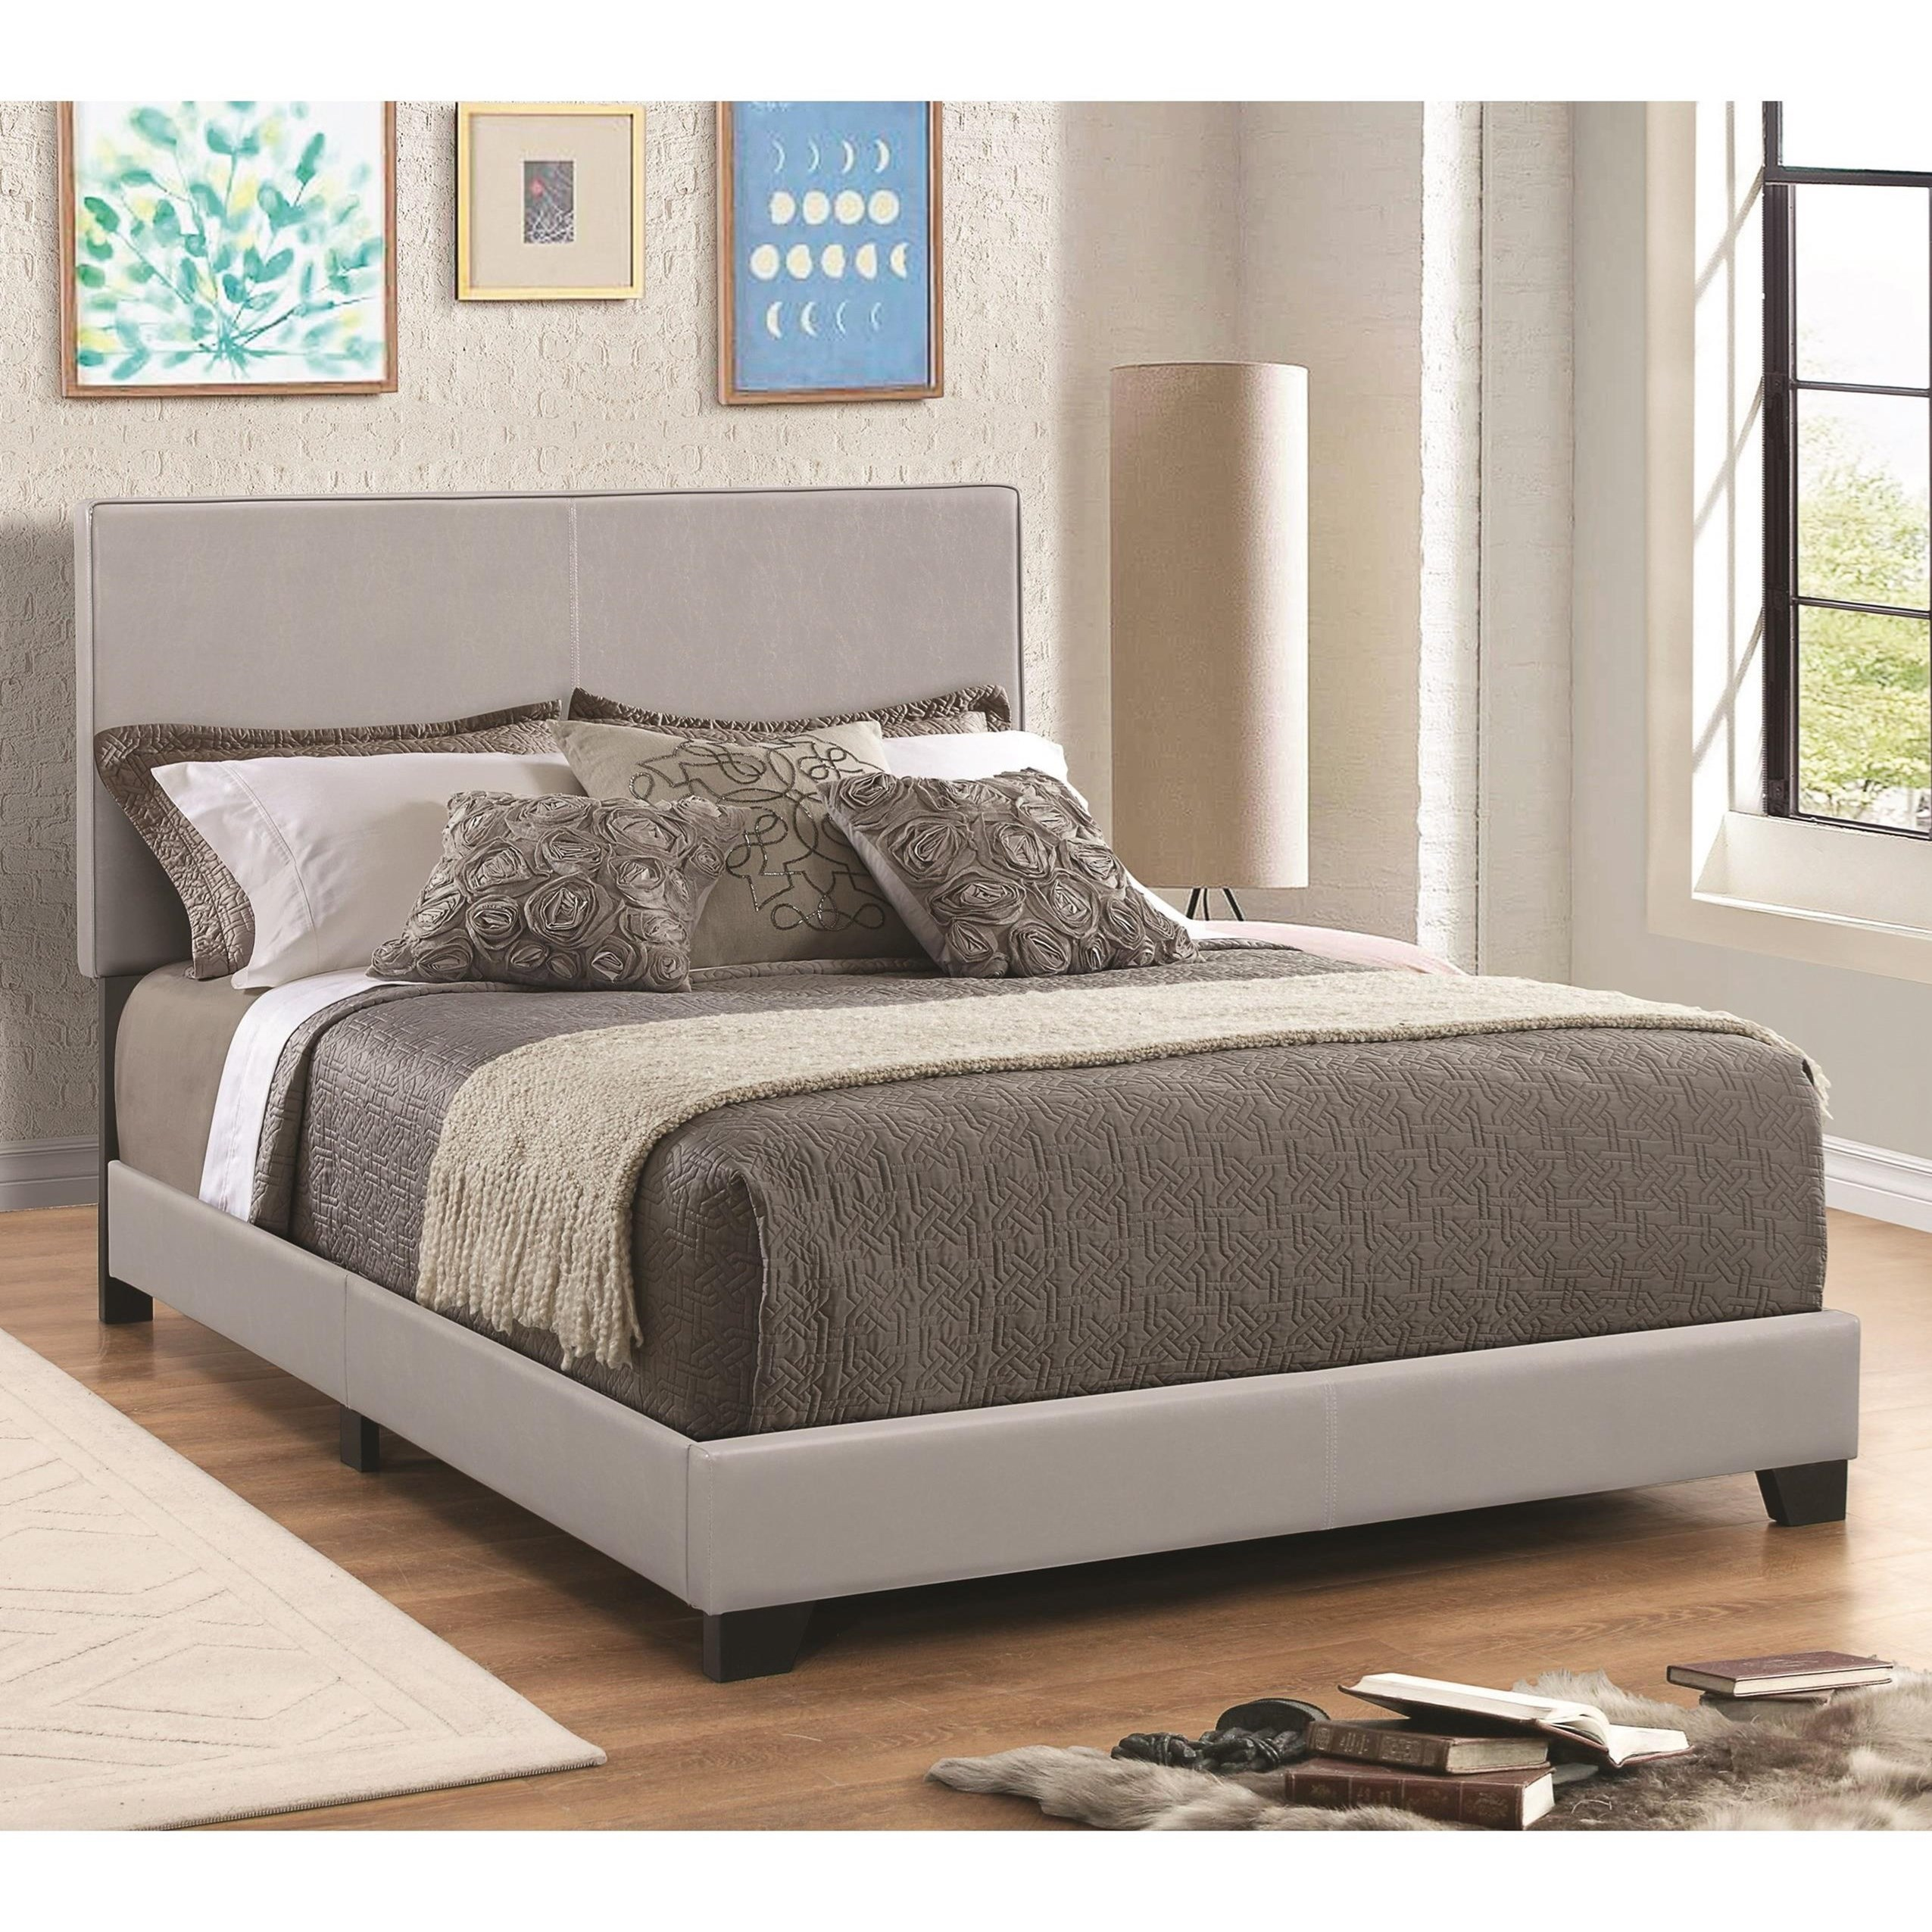 Dorian Grey Twin Bed by Coaster at Rife's Home Furniture